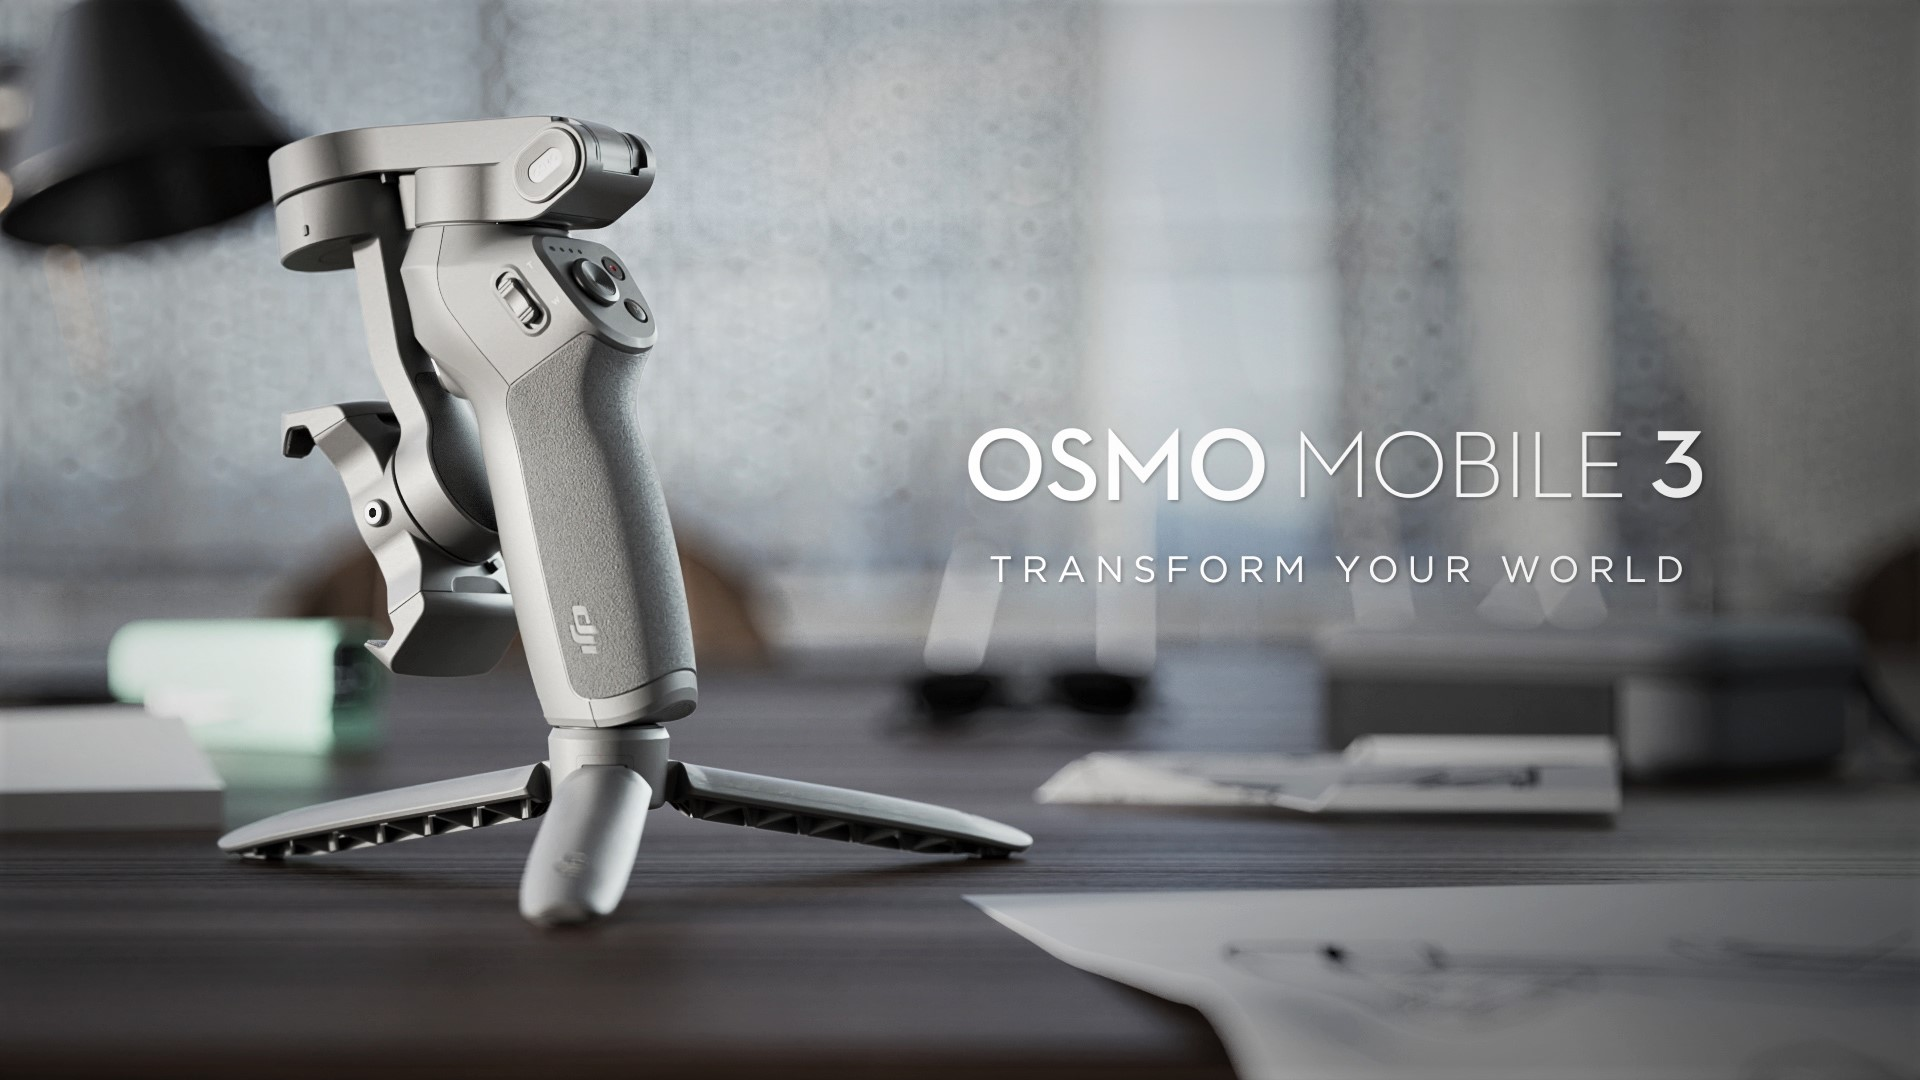 Osmo Mobile 3 - Imagination Unfolded